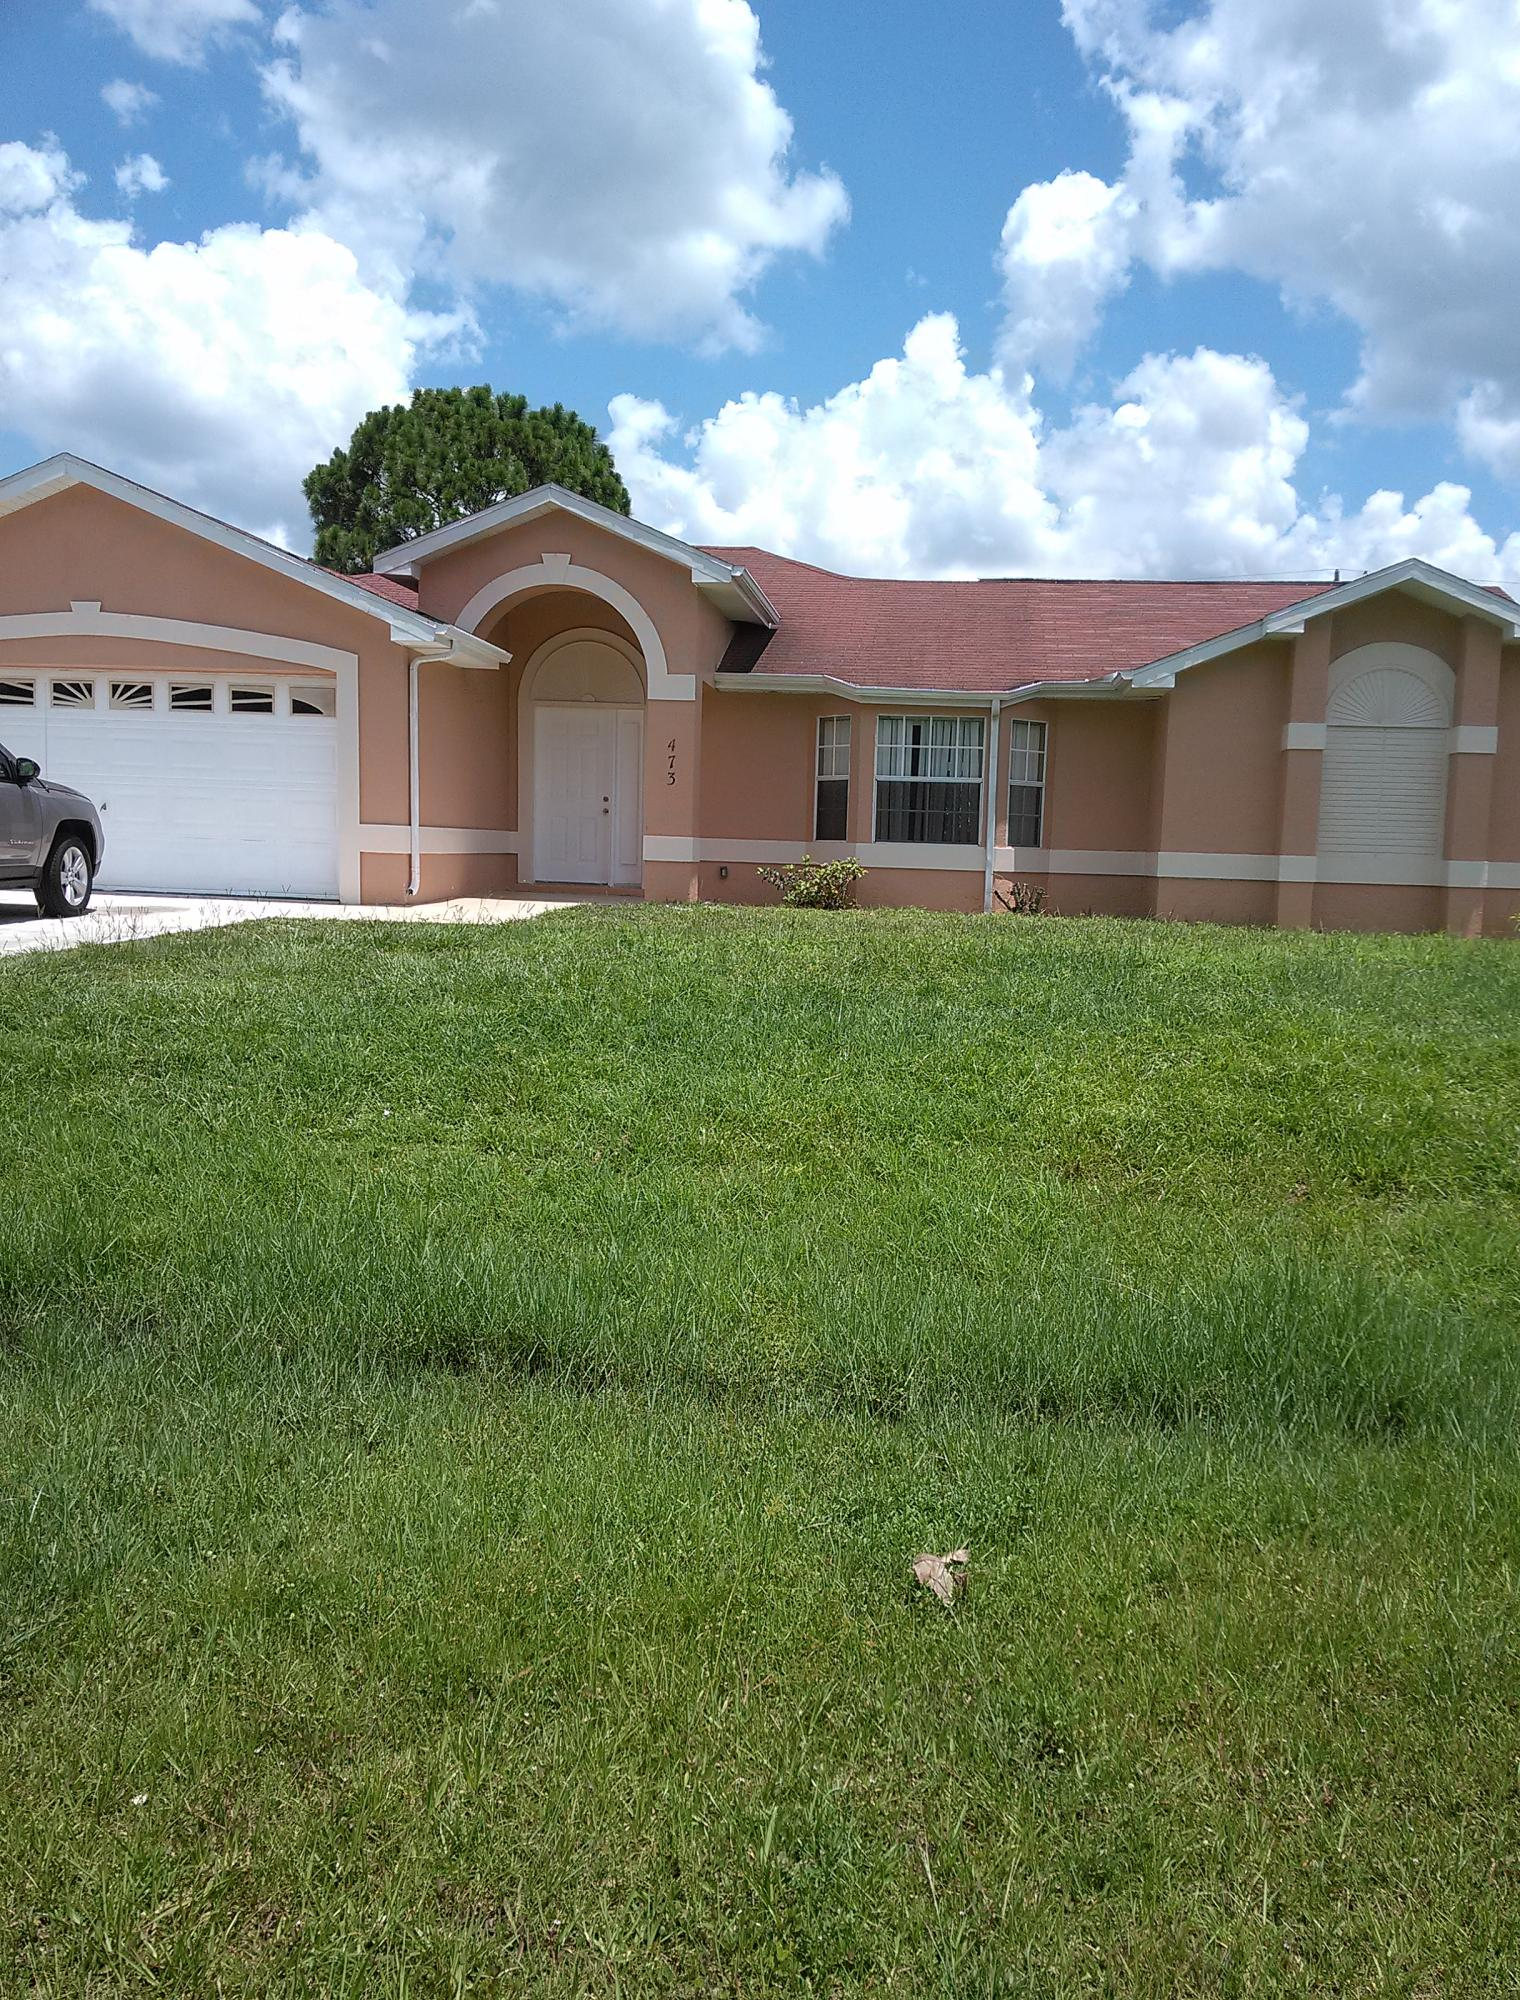 473 Sw Eyerly Avenue, Port Saint Lucie, FL 34983